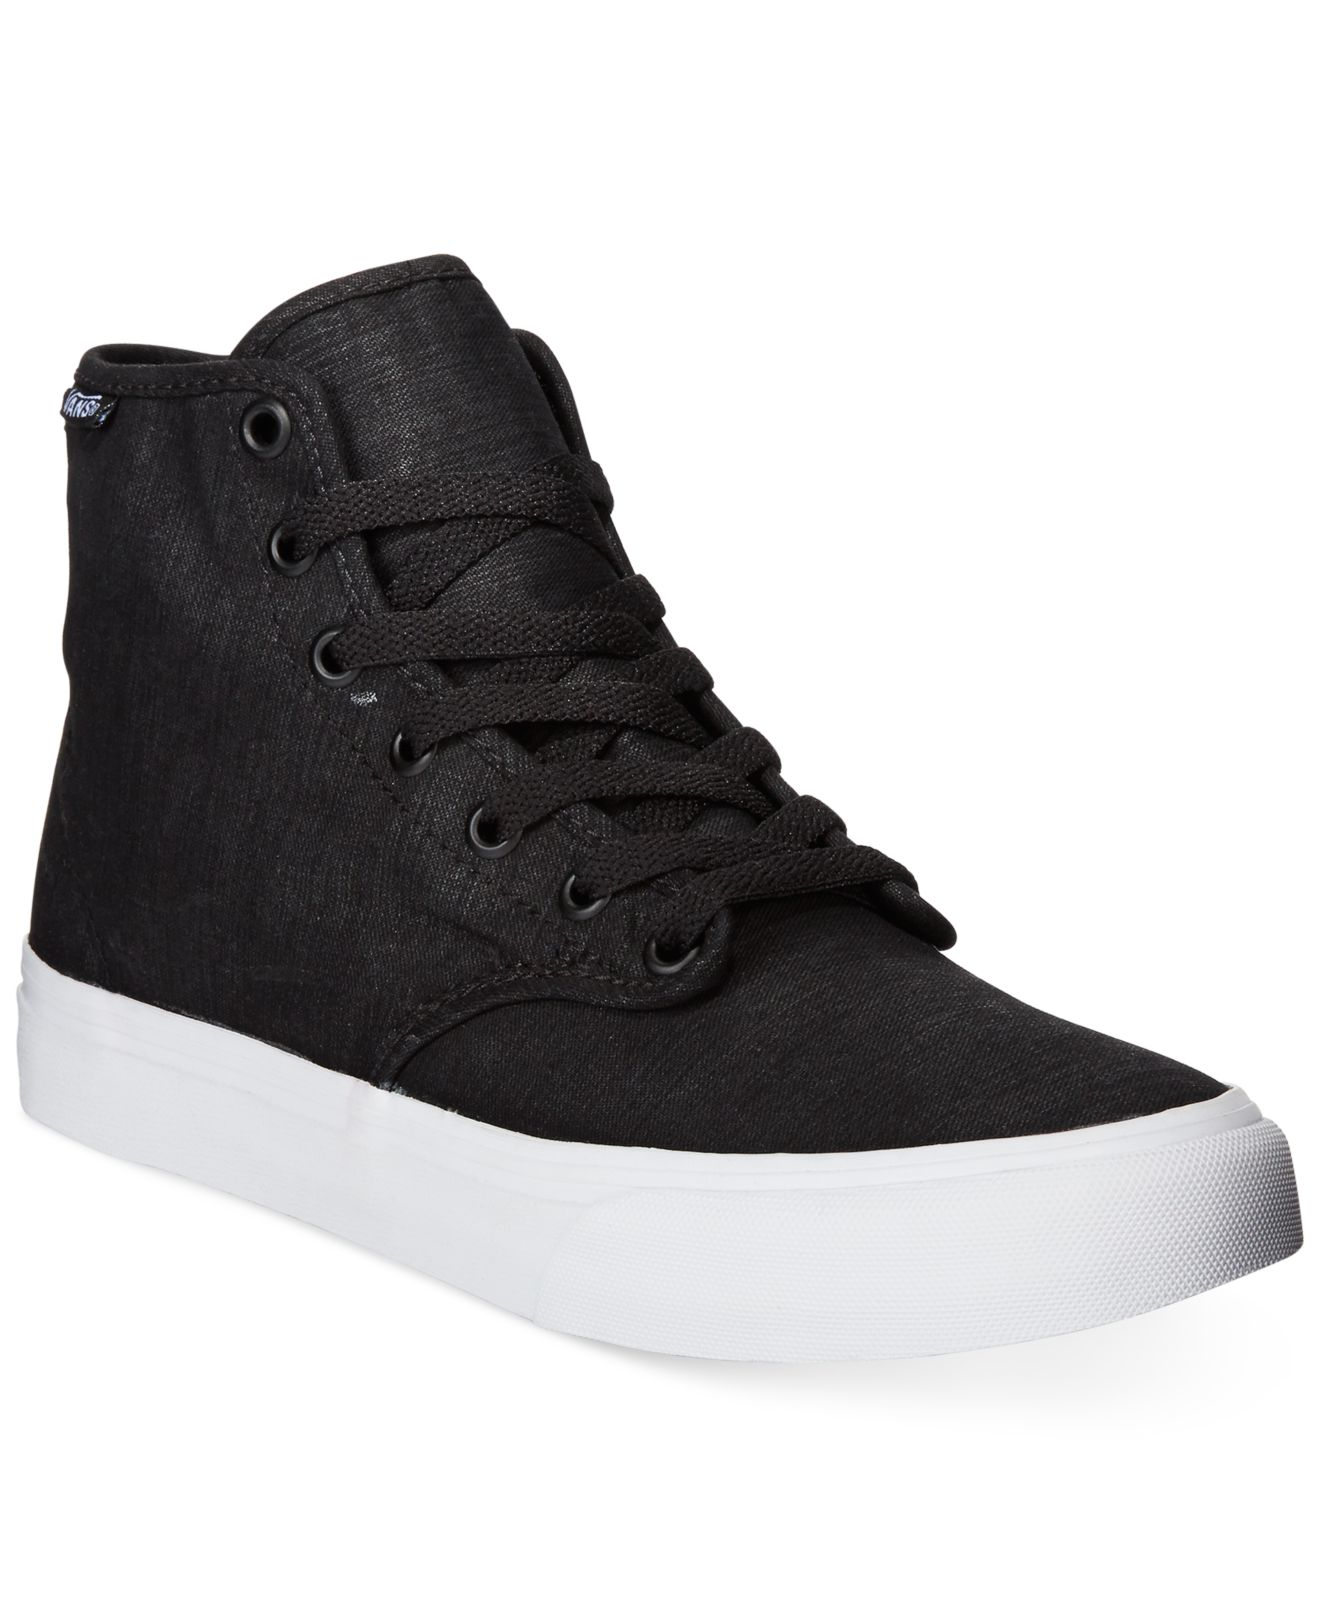 Discover the latest styles of women's athletic high top shoes from your favorite brands at Famous Footwear! Find your fit today!